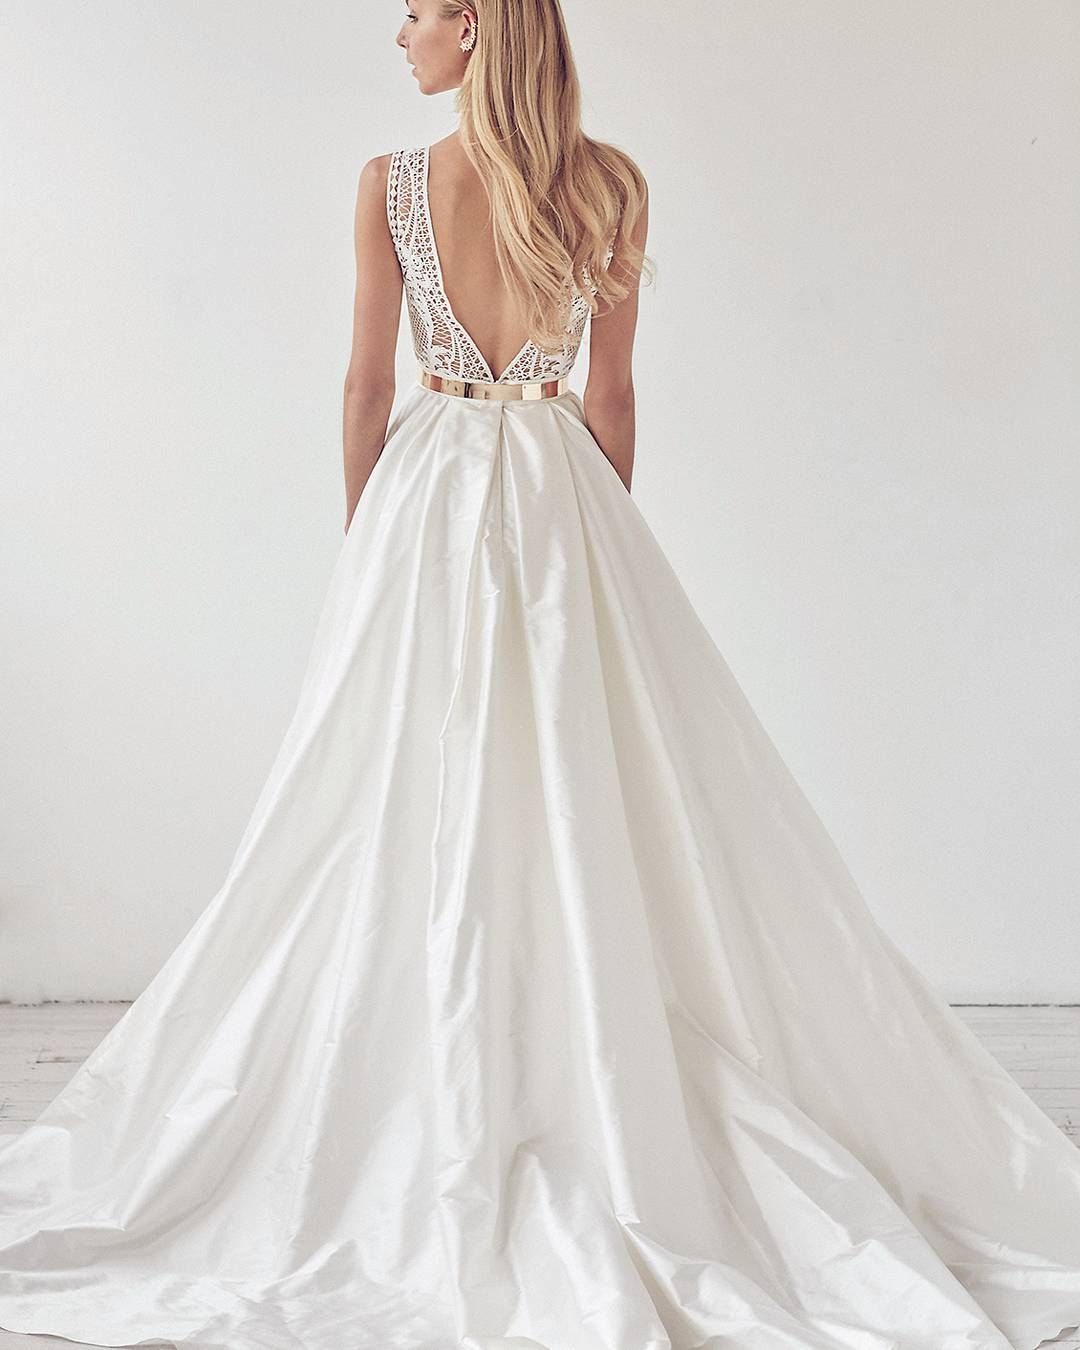 Wedding dresses designers  Stunning VBack Ball Gown  Photo Courtesy of Dimitraus Bridal